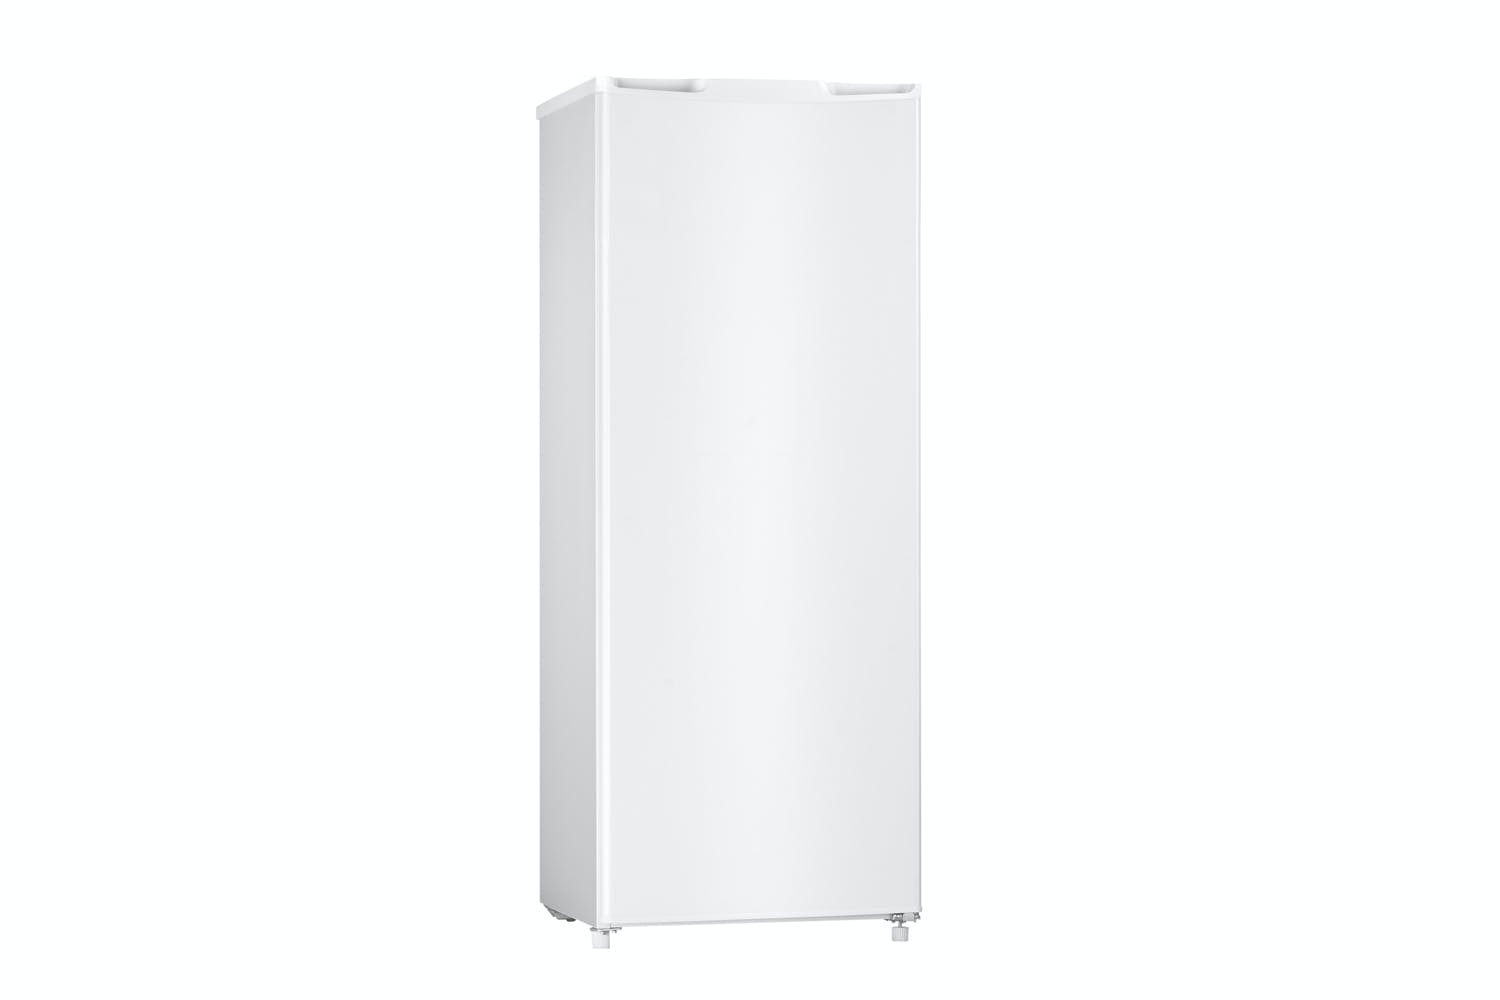 Vertical Freezers For Sale Acqua 177l Vertical Freezer Harvey Norman New Zealand